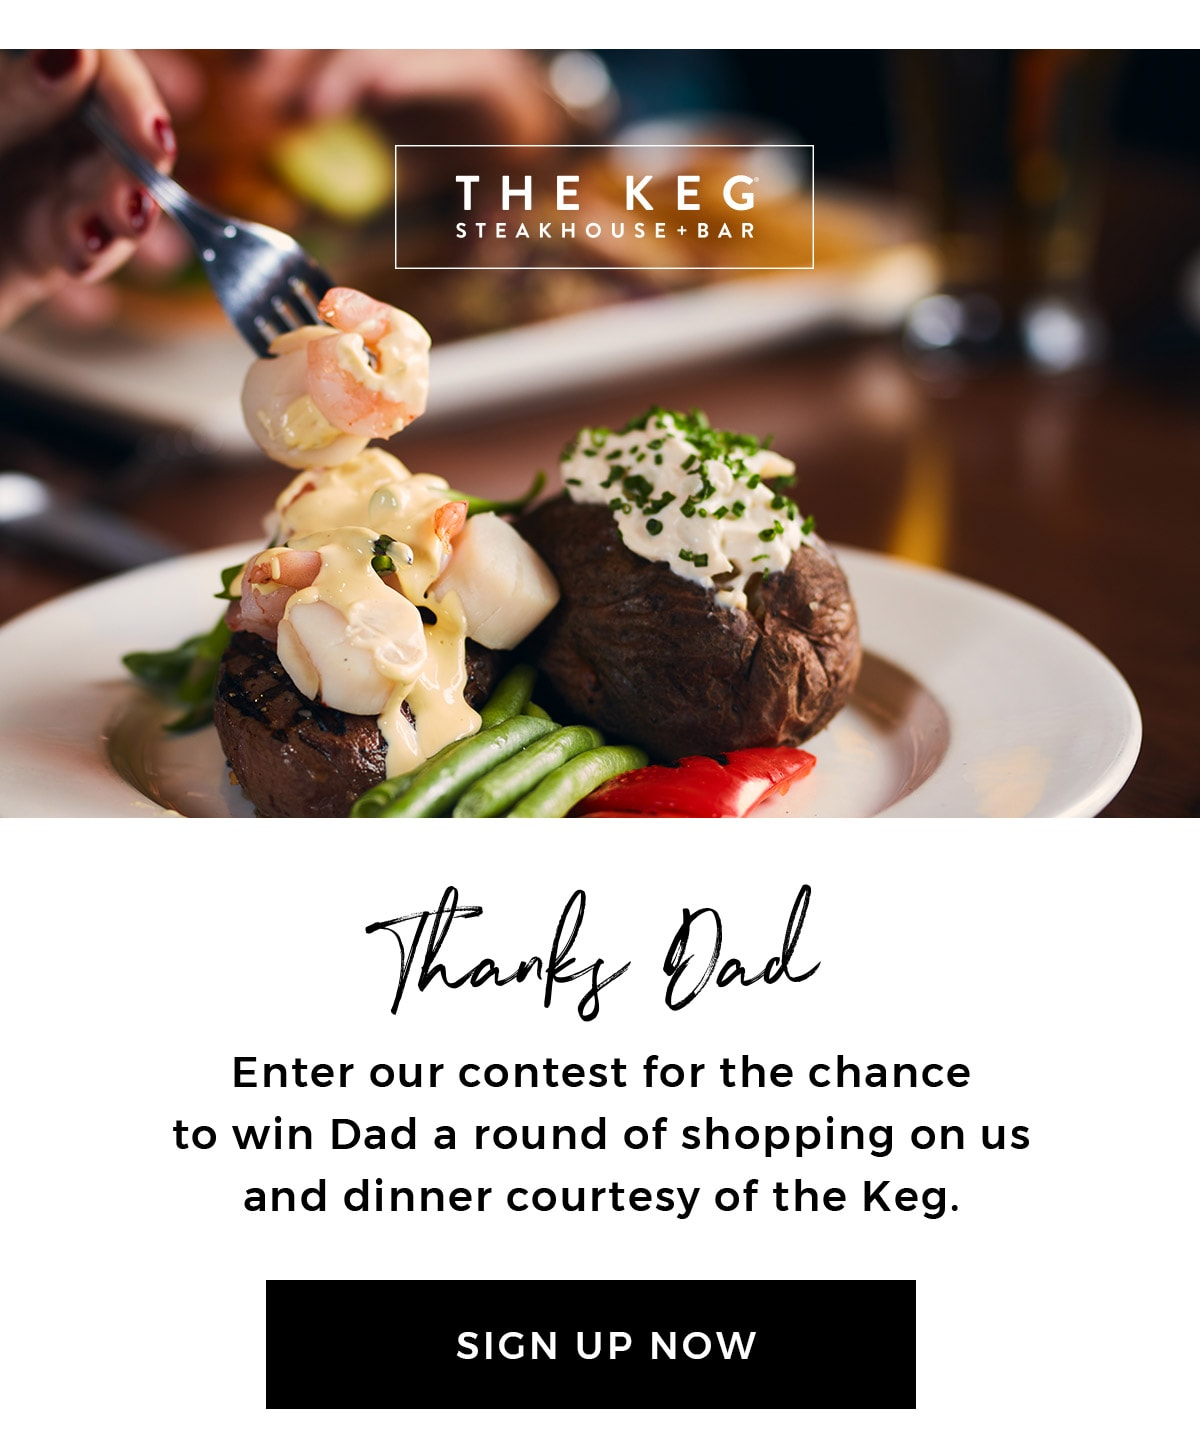 Spoiling him on his big day has never been so easy. Enter our contest for the chance to win Dad a round of shopping on us, and dinner courtesy of our partners at the Keg. SIGN UP NOW